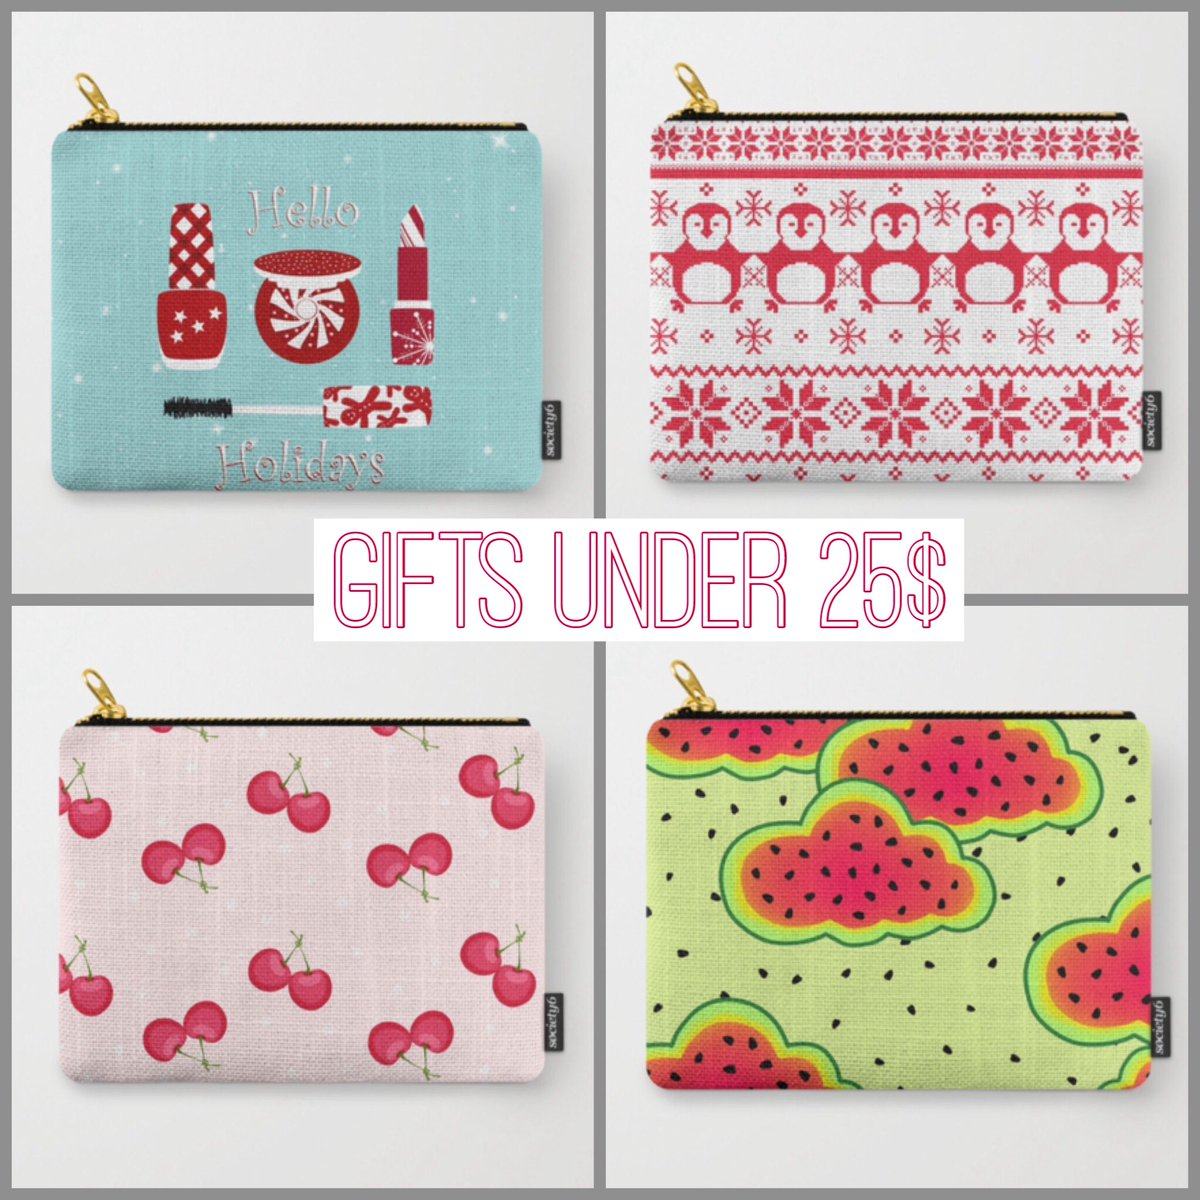 Ideas For Gifts under 25$ for my Society6 Store !!! Direct link in my bio for my stores @society6 #pouches #giftsideas #holidayseason #musthave #holidaygifts #holiday #christmas #christmasgifts #makeupbag #instaartist #instadesign @oursunnycdays<br>http://pic.twitter.com/j3YSl1pxic